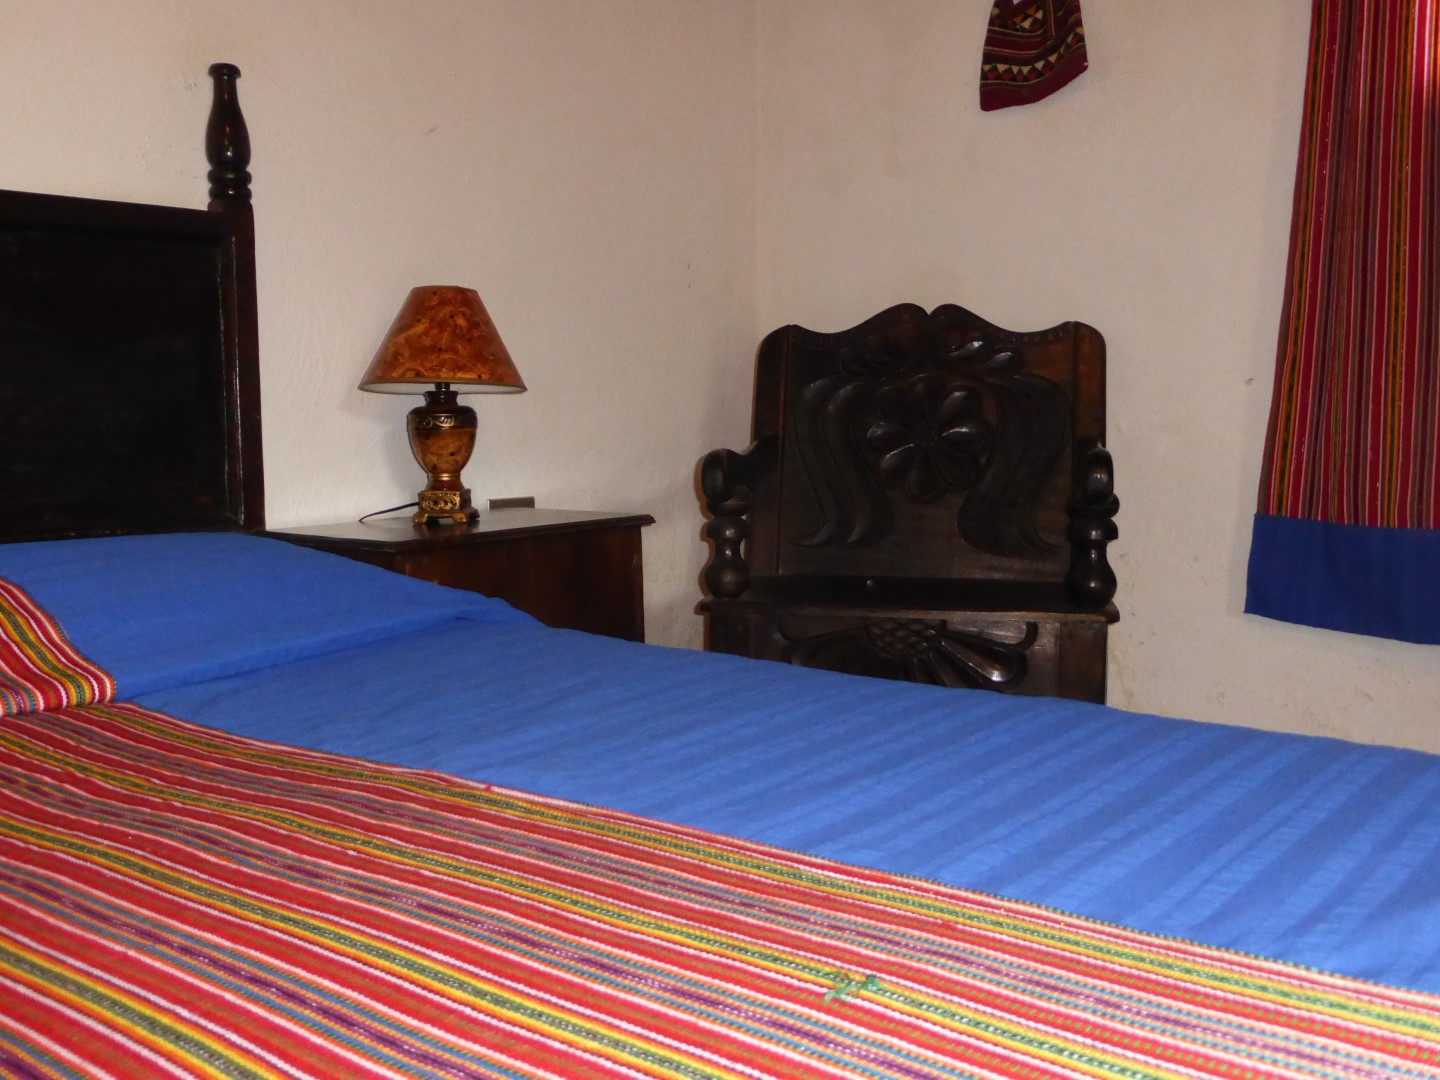 Bed at Hacienda Mil Amores in Ixil Triangle, Guatemala